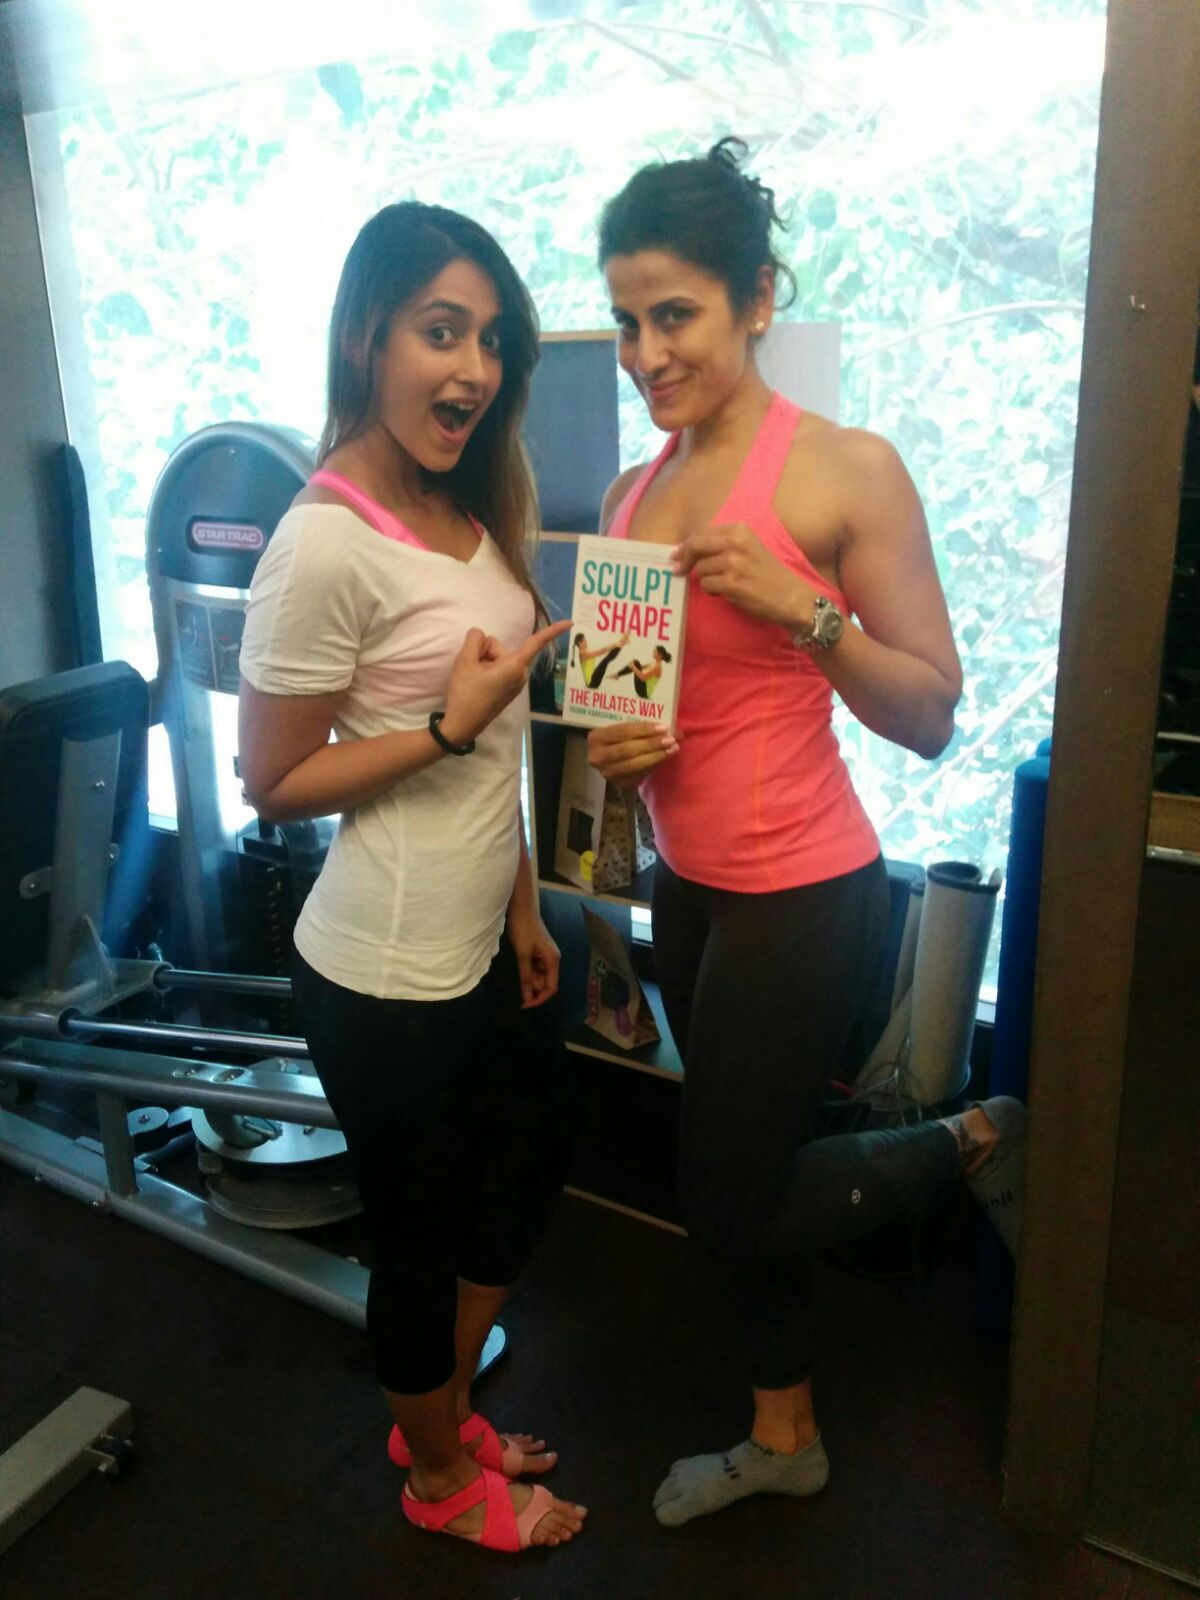 """Ileana D'Cruz     """"When Yasmin introduced me to Pilates I was intrigued, curious. It looked interesting, very different to the other kinds of workouts I had tried before. Let me just say, I Love going to the gym now! Pilates has helped strengthen my core immensely, it also helped better my posture. I felt healthier, more energized and my body has never looked better than it does now. I saw results in just a month! All I do now is Pilates.     There's days when my body just feels sore and tired and doing a session of Pilates just stretches my body out and makes me feel great and rejuvenated. """""""